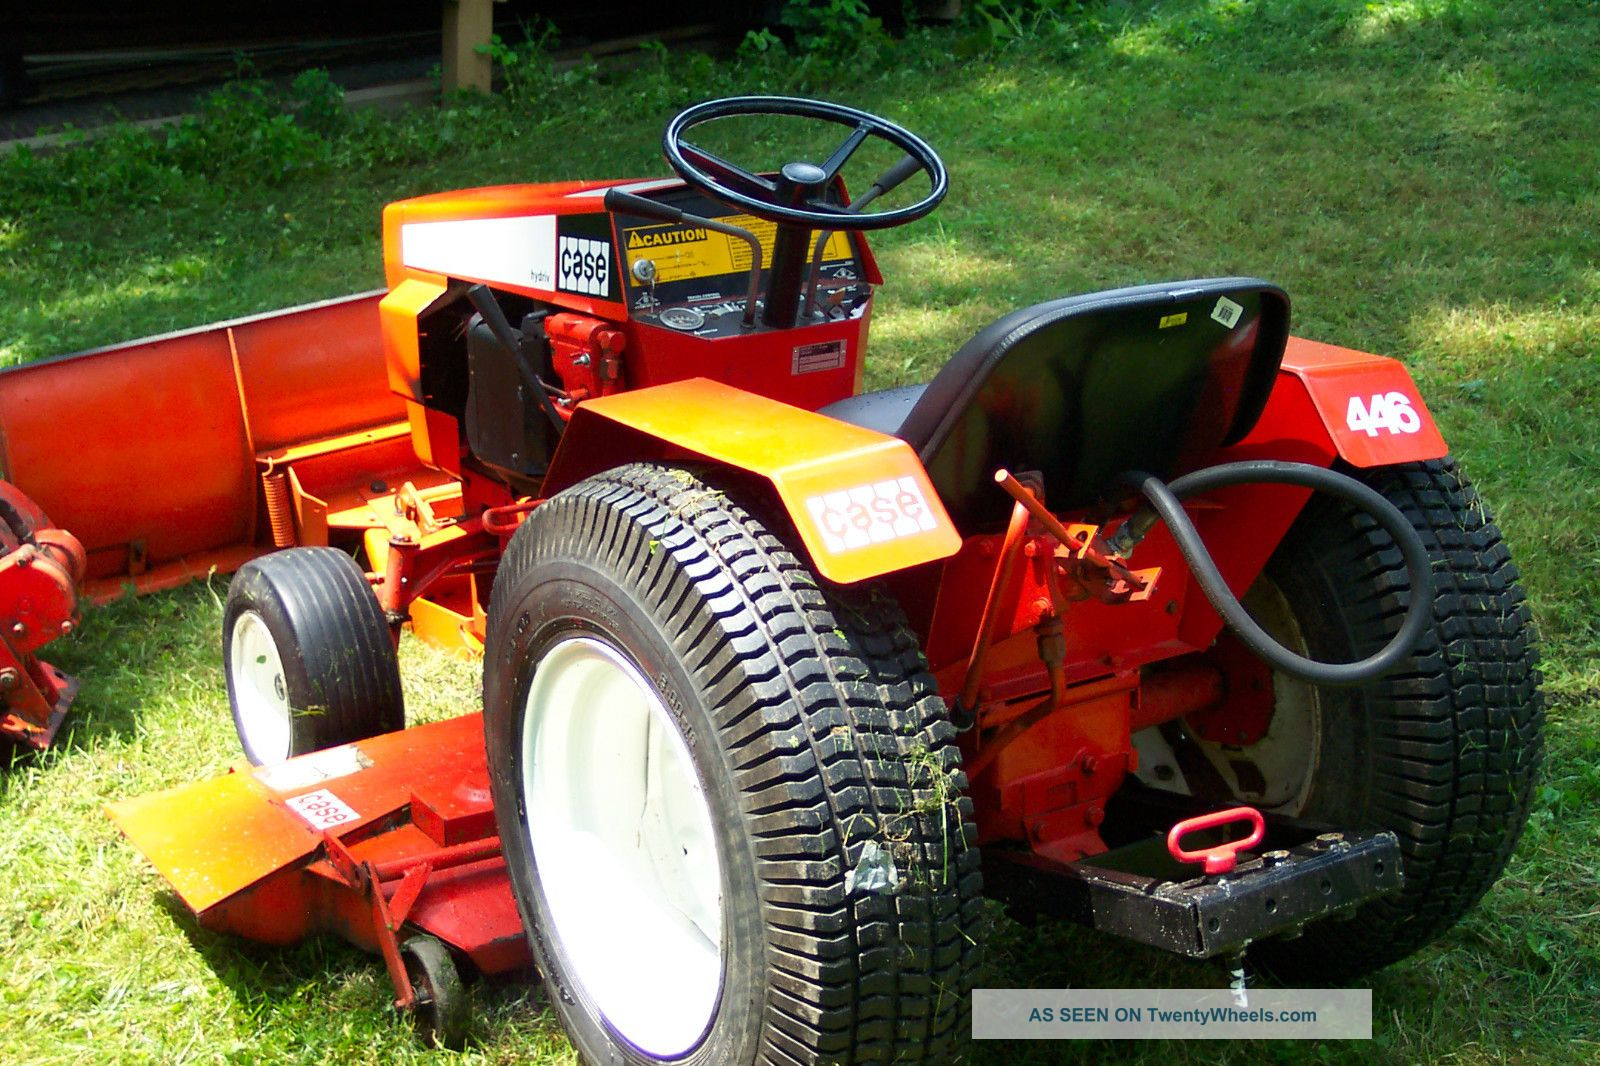 Case Garden Tractor Plow : Case garden tractor with deck and snow plow